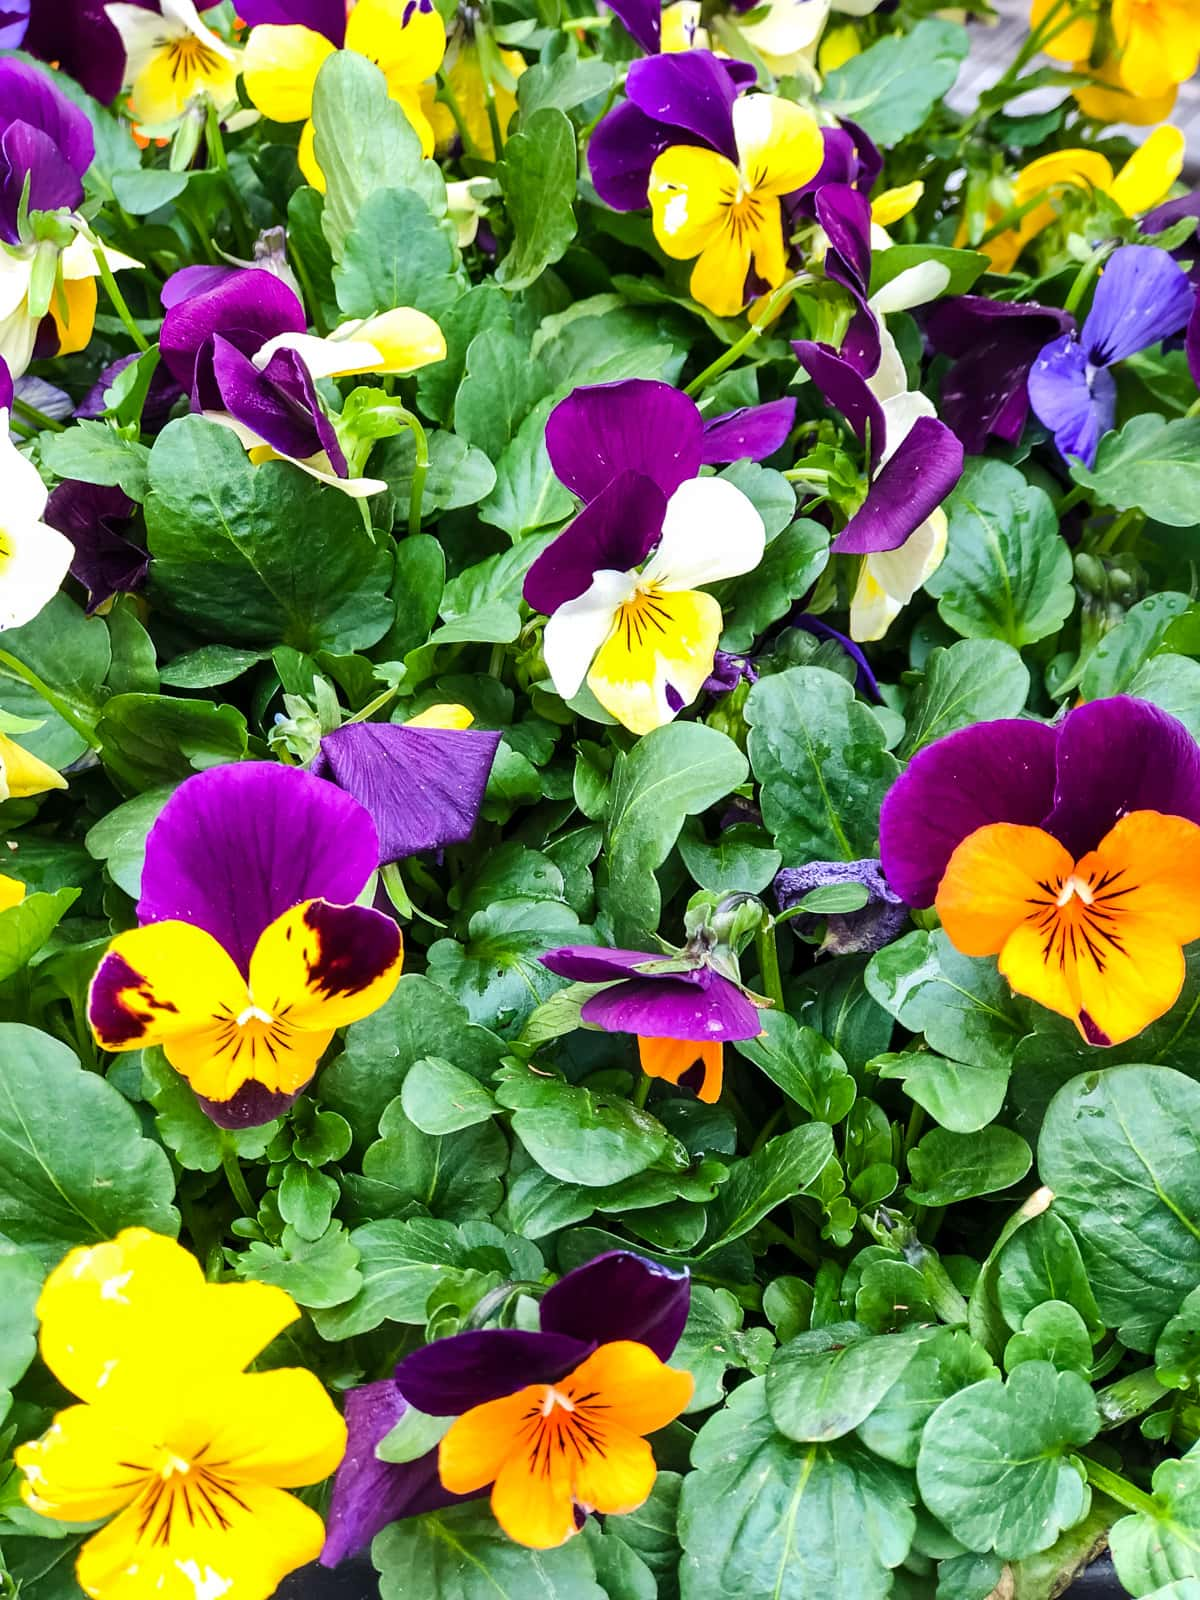 Planting an Edible Flower Garden: Pansies